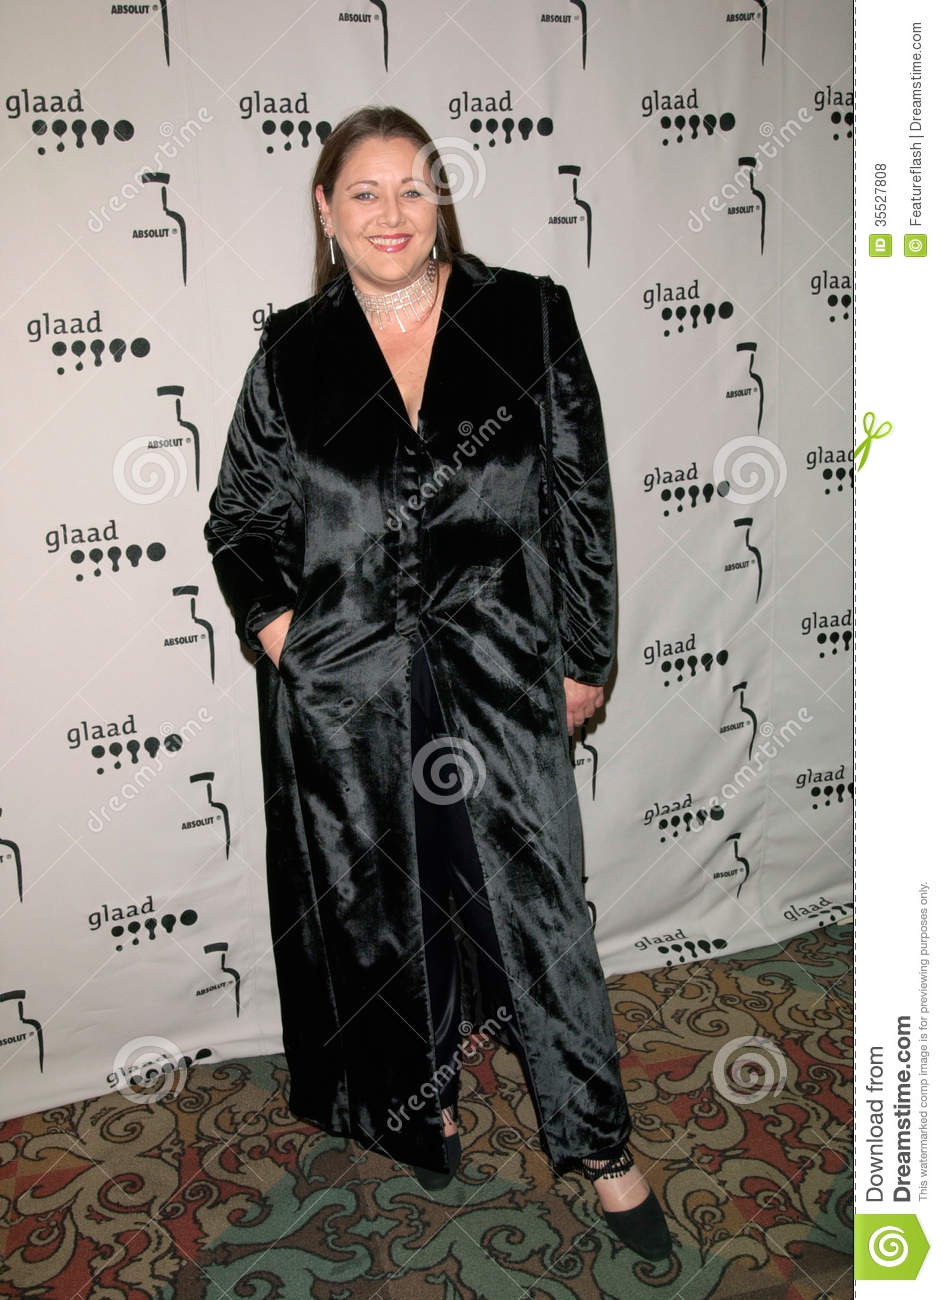 CAMRYN MANHEIM at the Gay & Lesbian Alliance Against Defamation ...: www.dreamstime.com/royalty-free-stock-photos-camryn-manheim-apr...